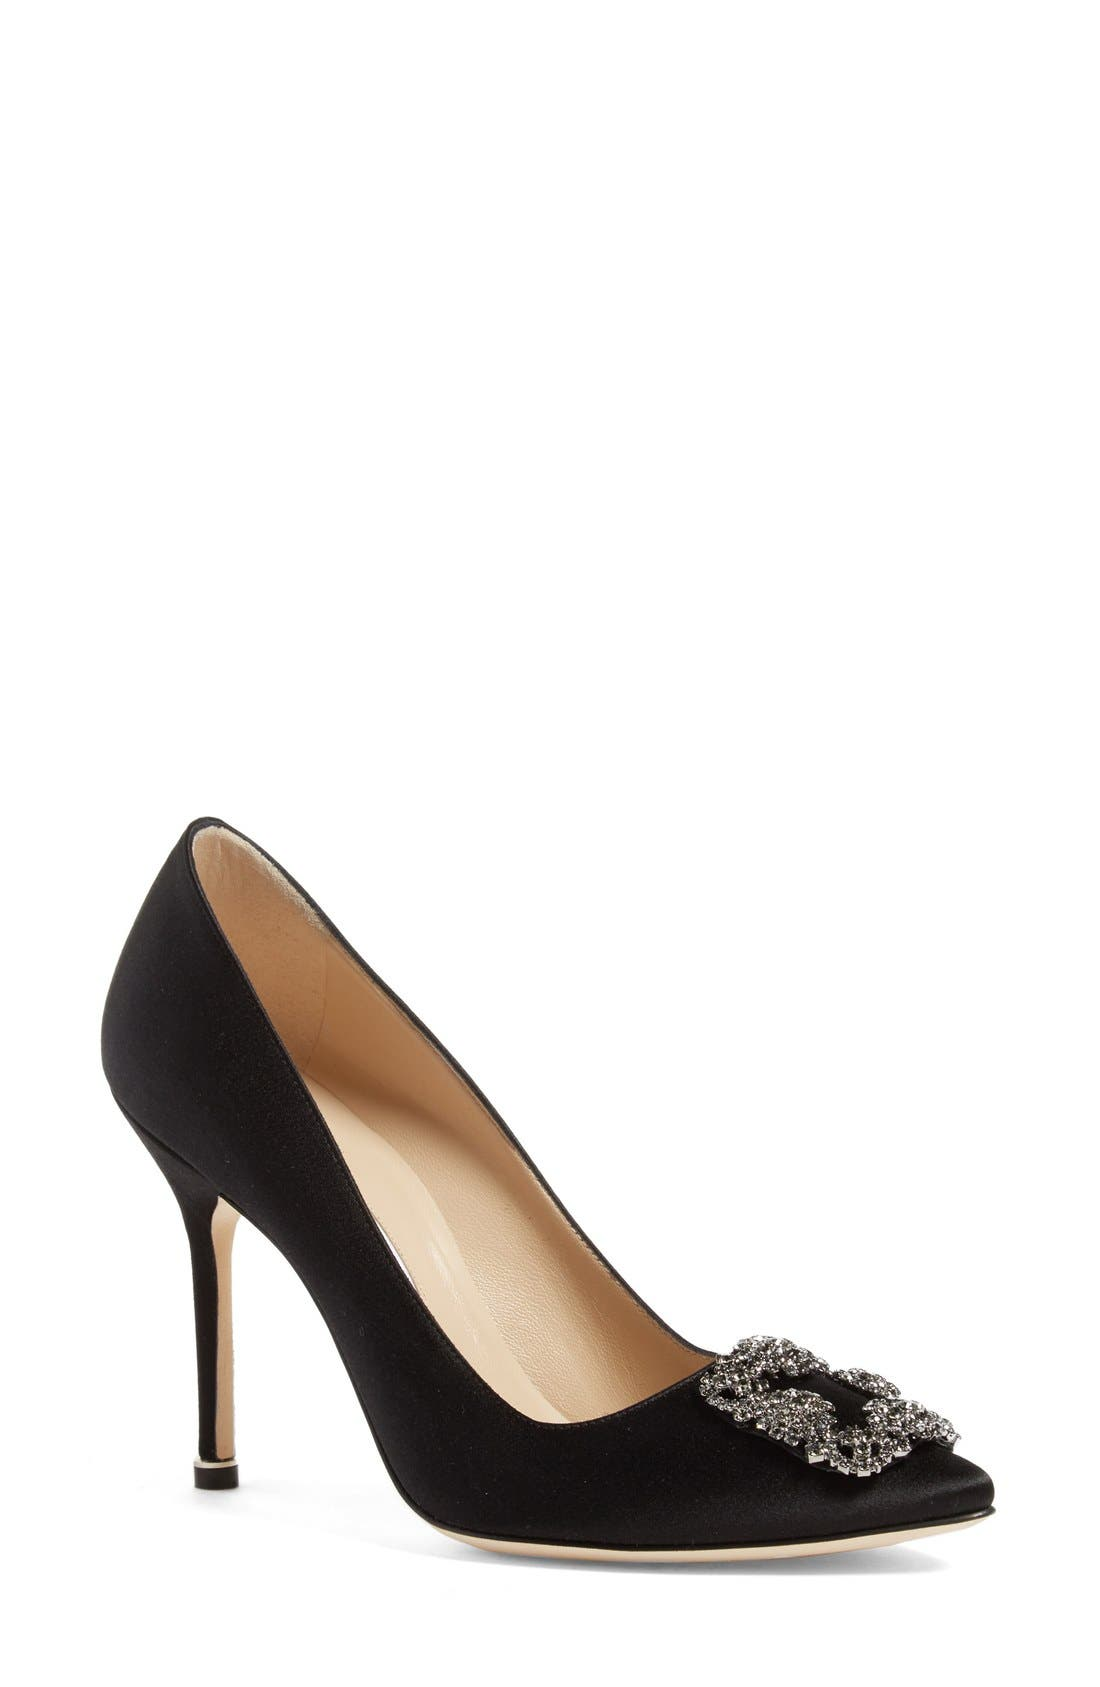 Manolo Blahnik 'Hangisi' Jewel Pump (Women)